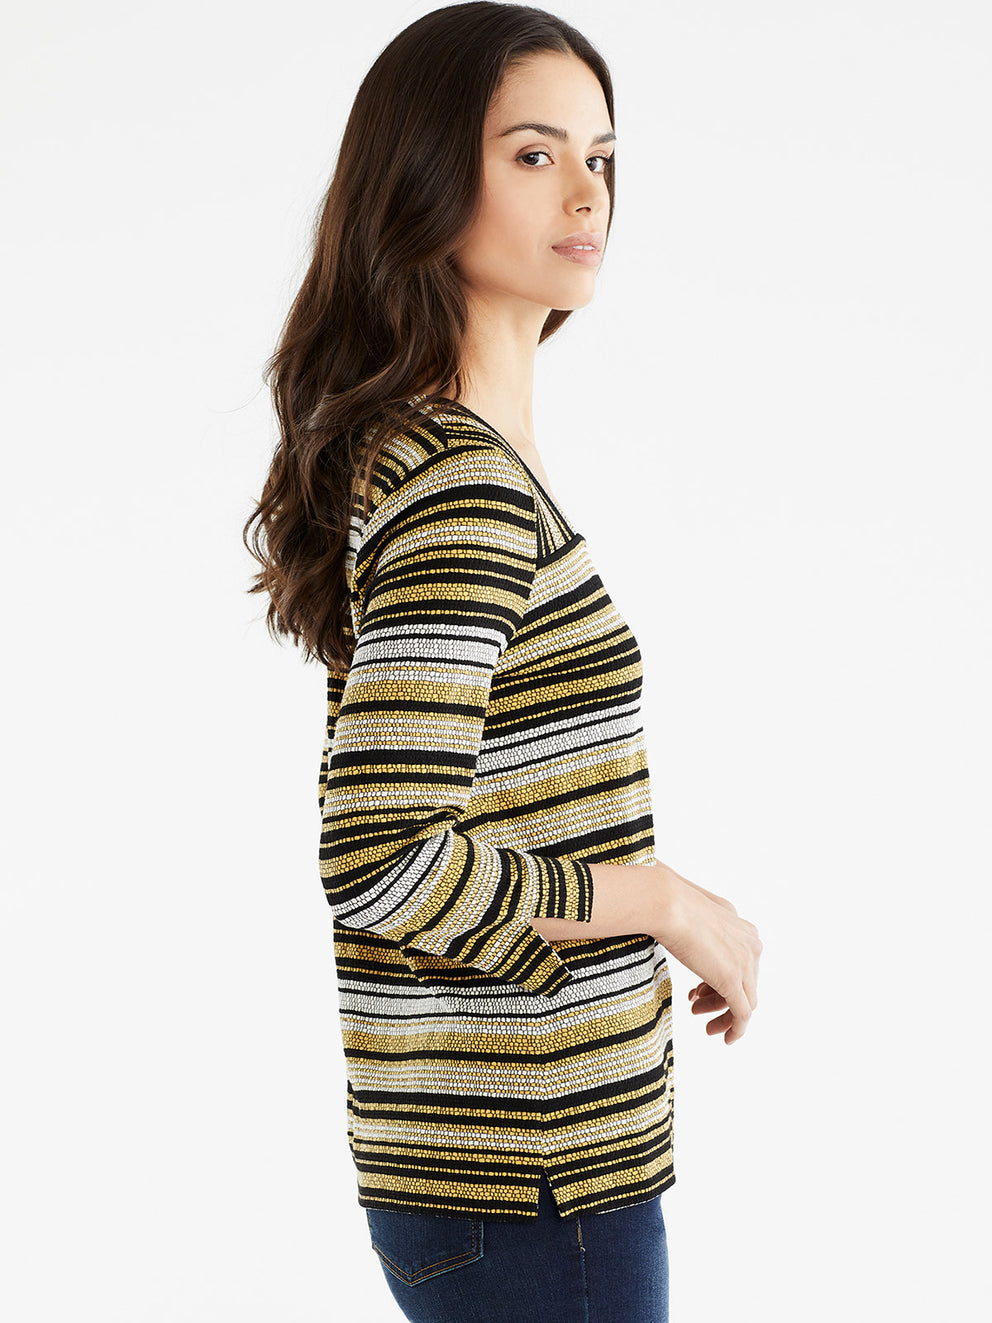 The Jones New York Striped Square Neck Top, Plus Size in color Golden Combo - Image Position 2